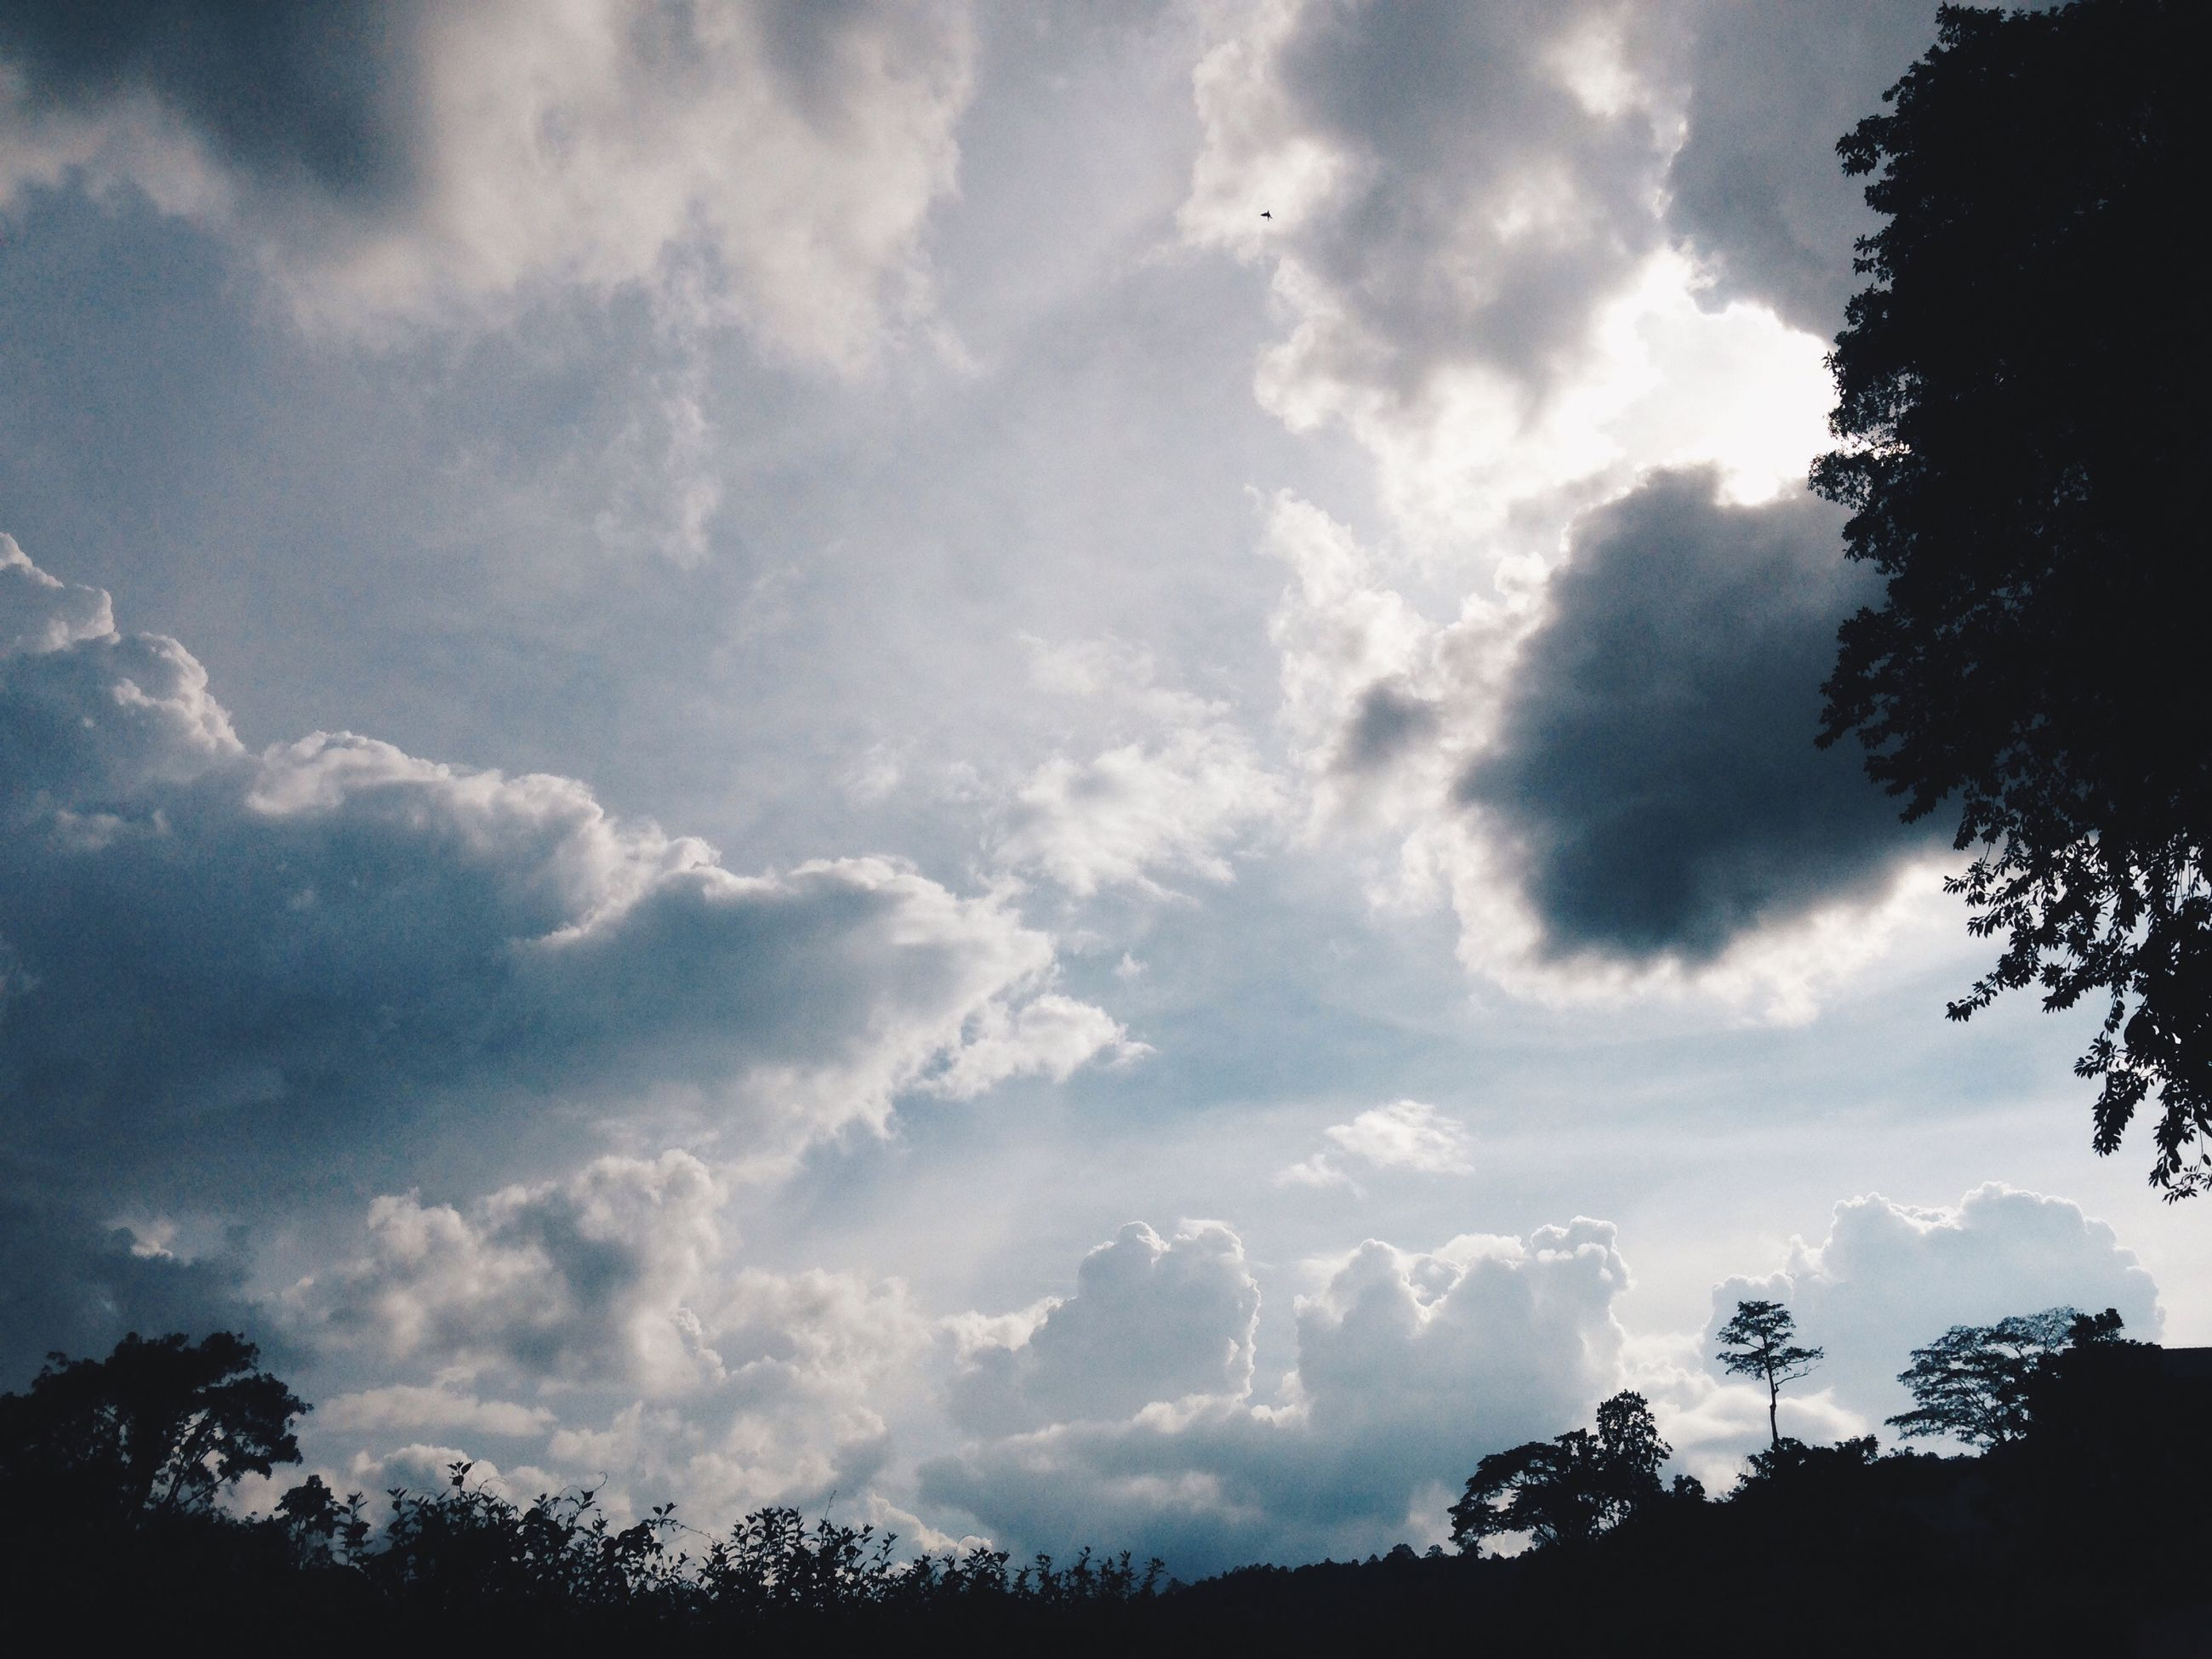 sky, silhouette, low angle view, tree, cloud - sky, tranquility, cloudy, beauty in nature, nature, cloud, scenics, tranquil scene, growth, high section, outdoors, dusk, no people, blue, outline, idyllic